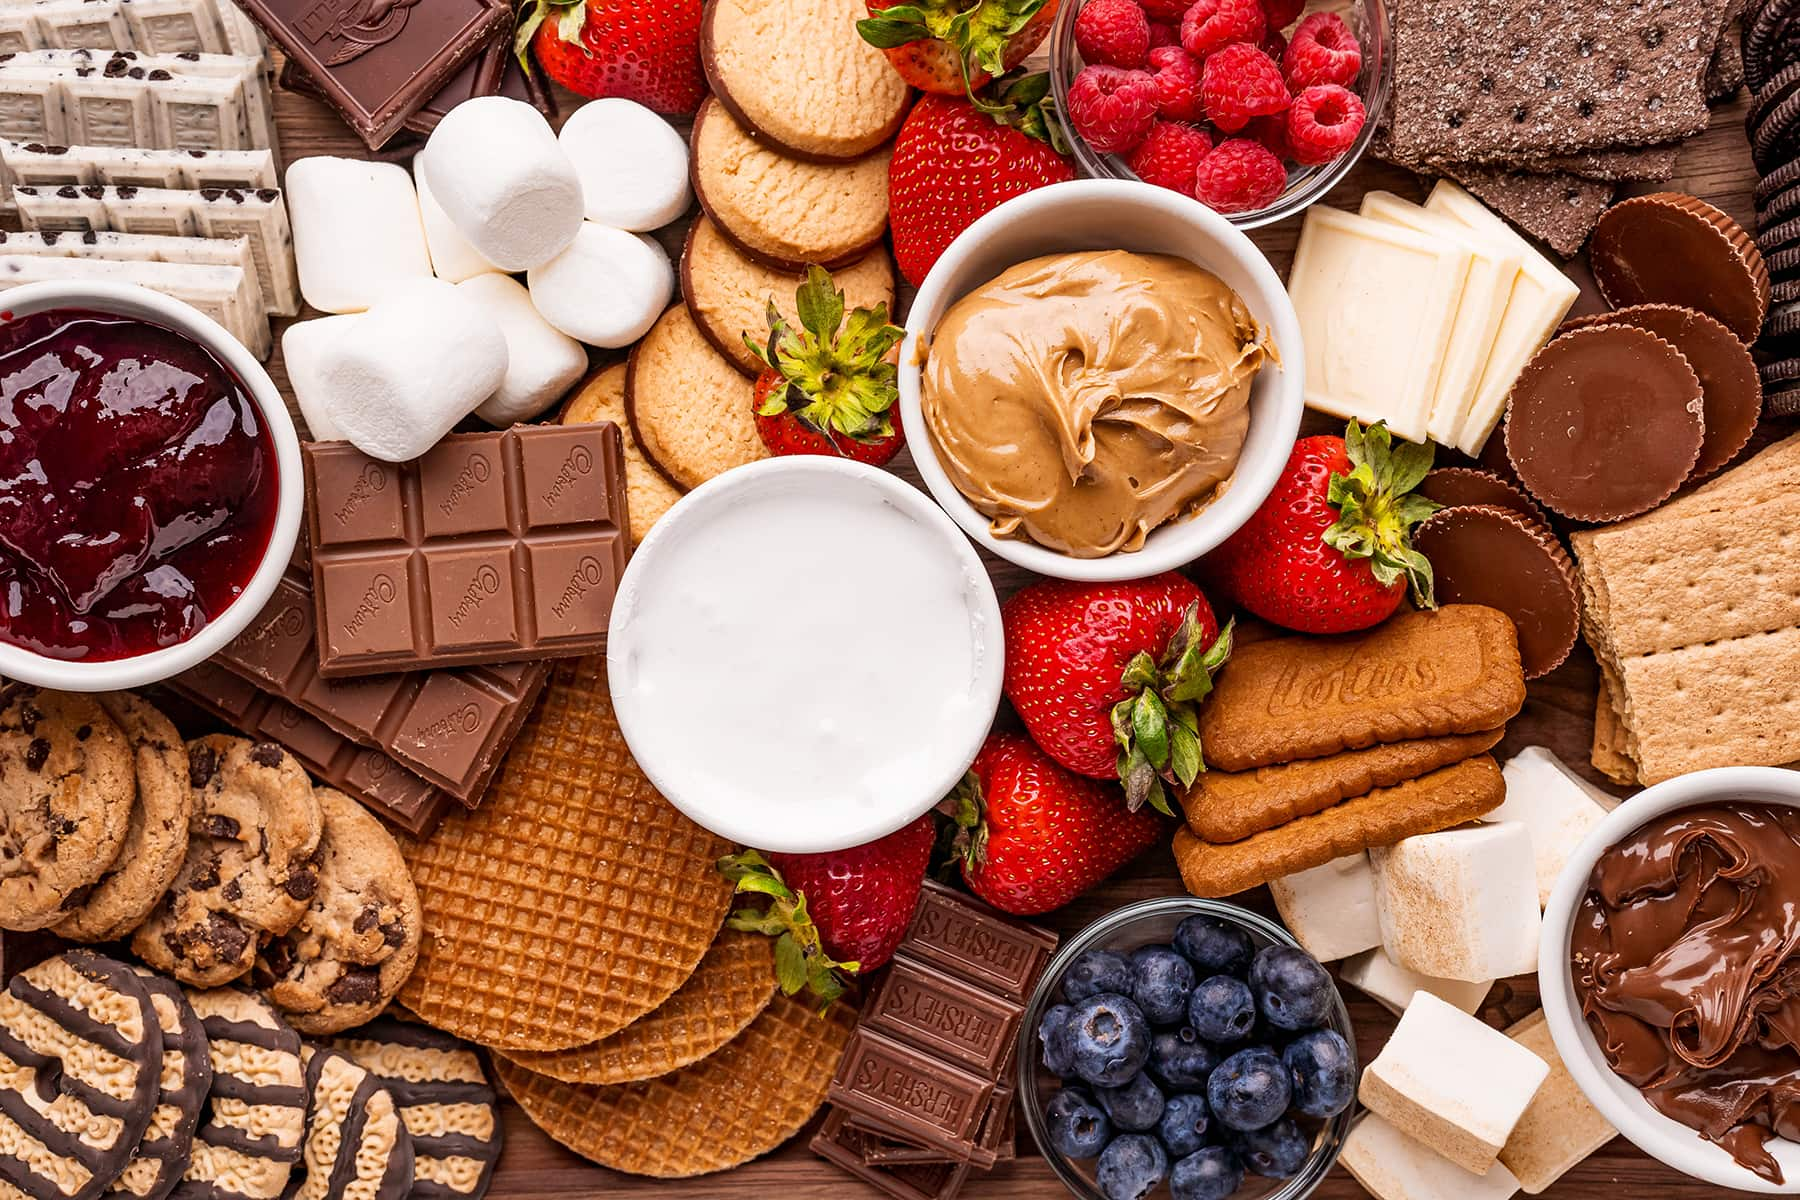 A s'mores board full of cookie choices, fresh berries, chocolate and dips to make a variety of s'mores.